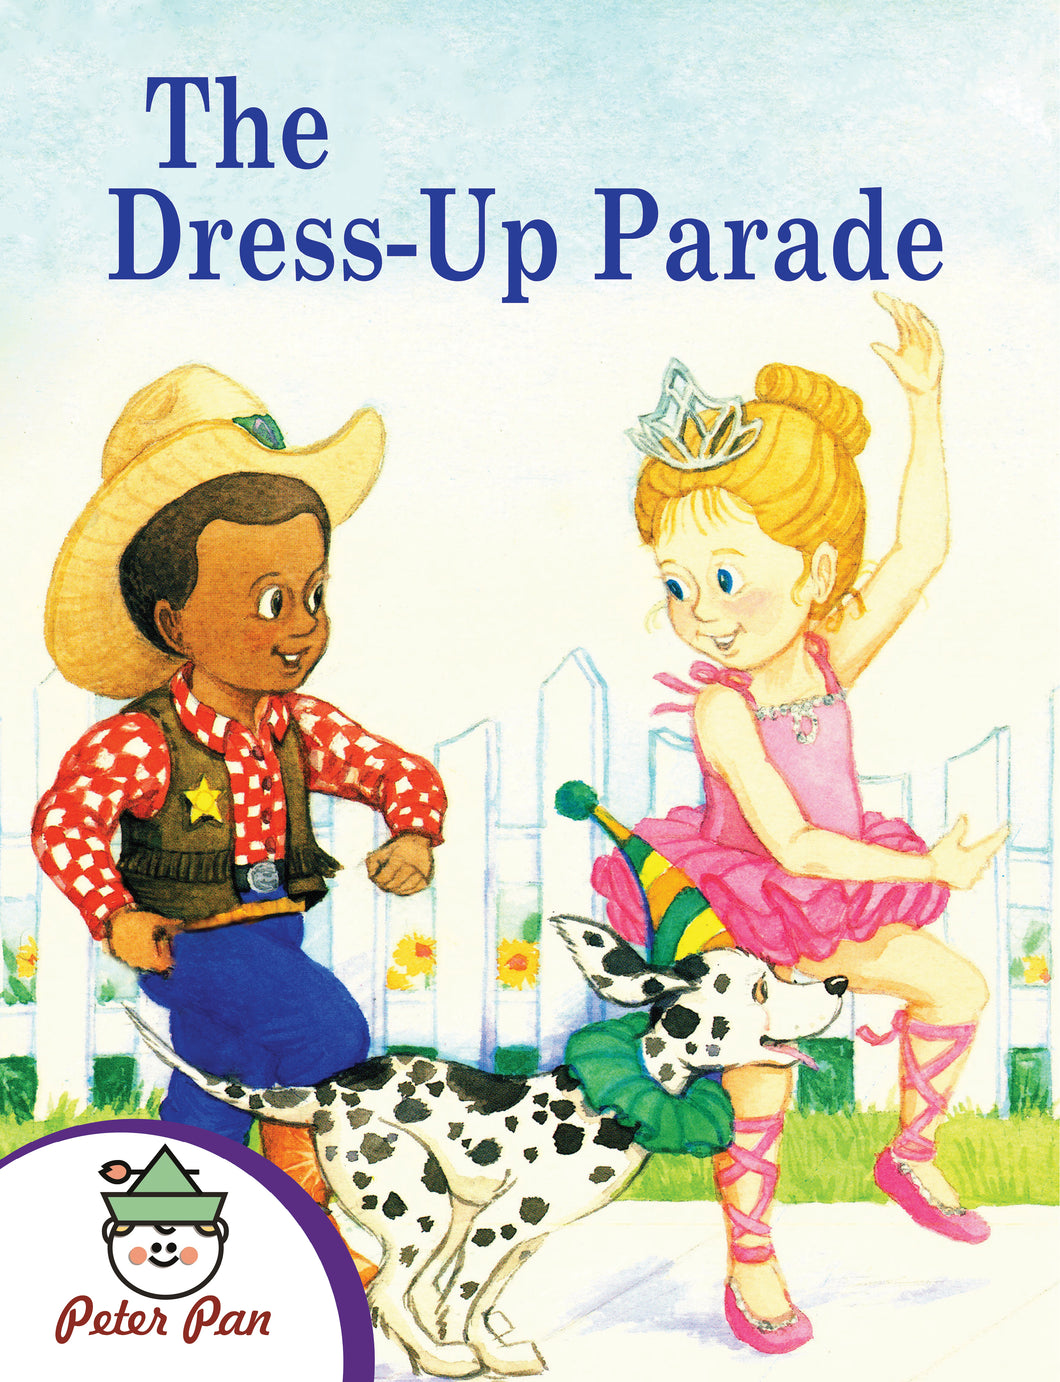 The Dress-Up Parade